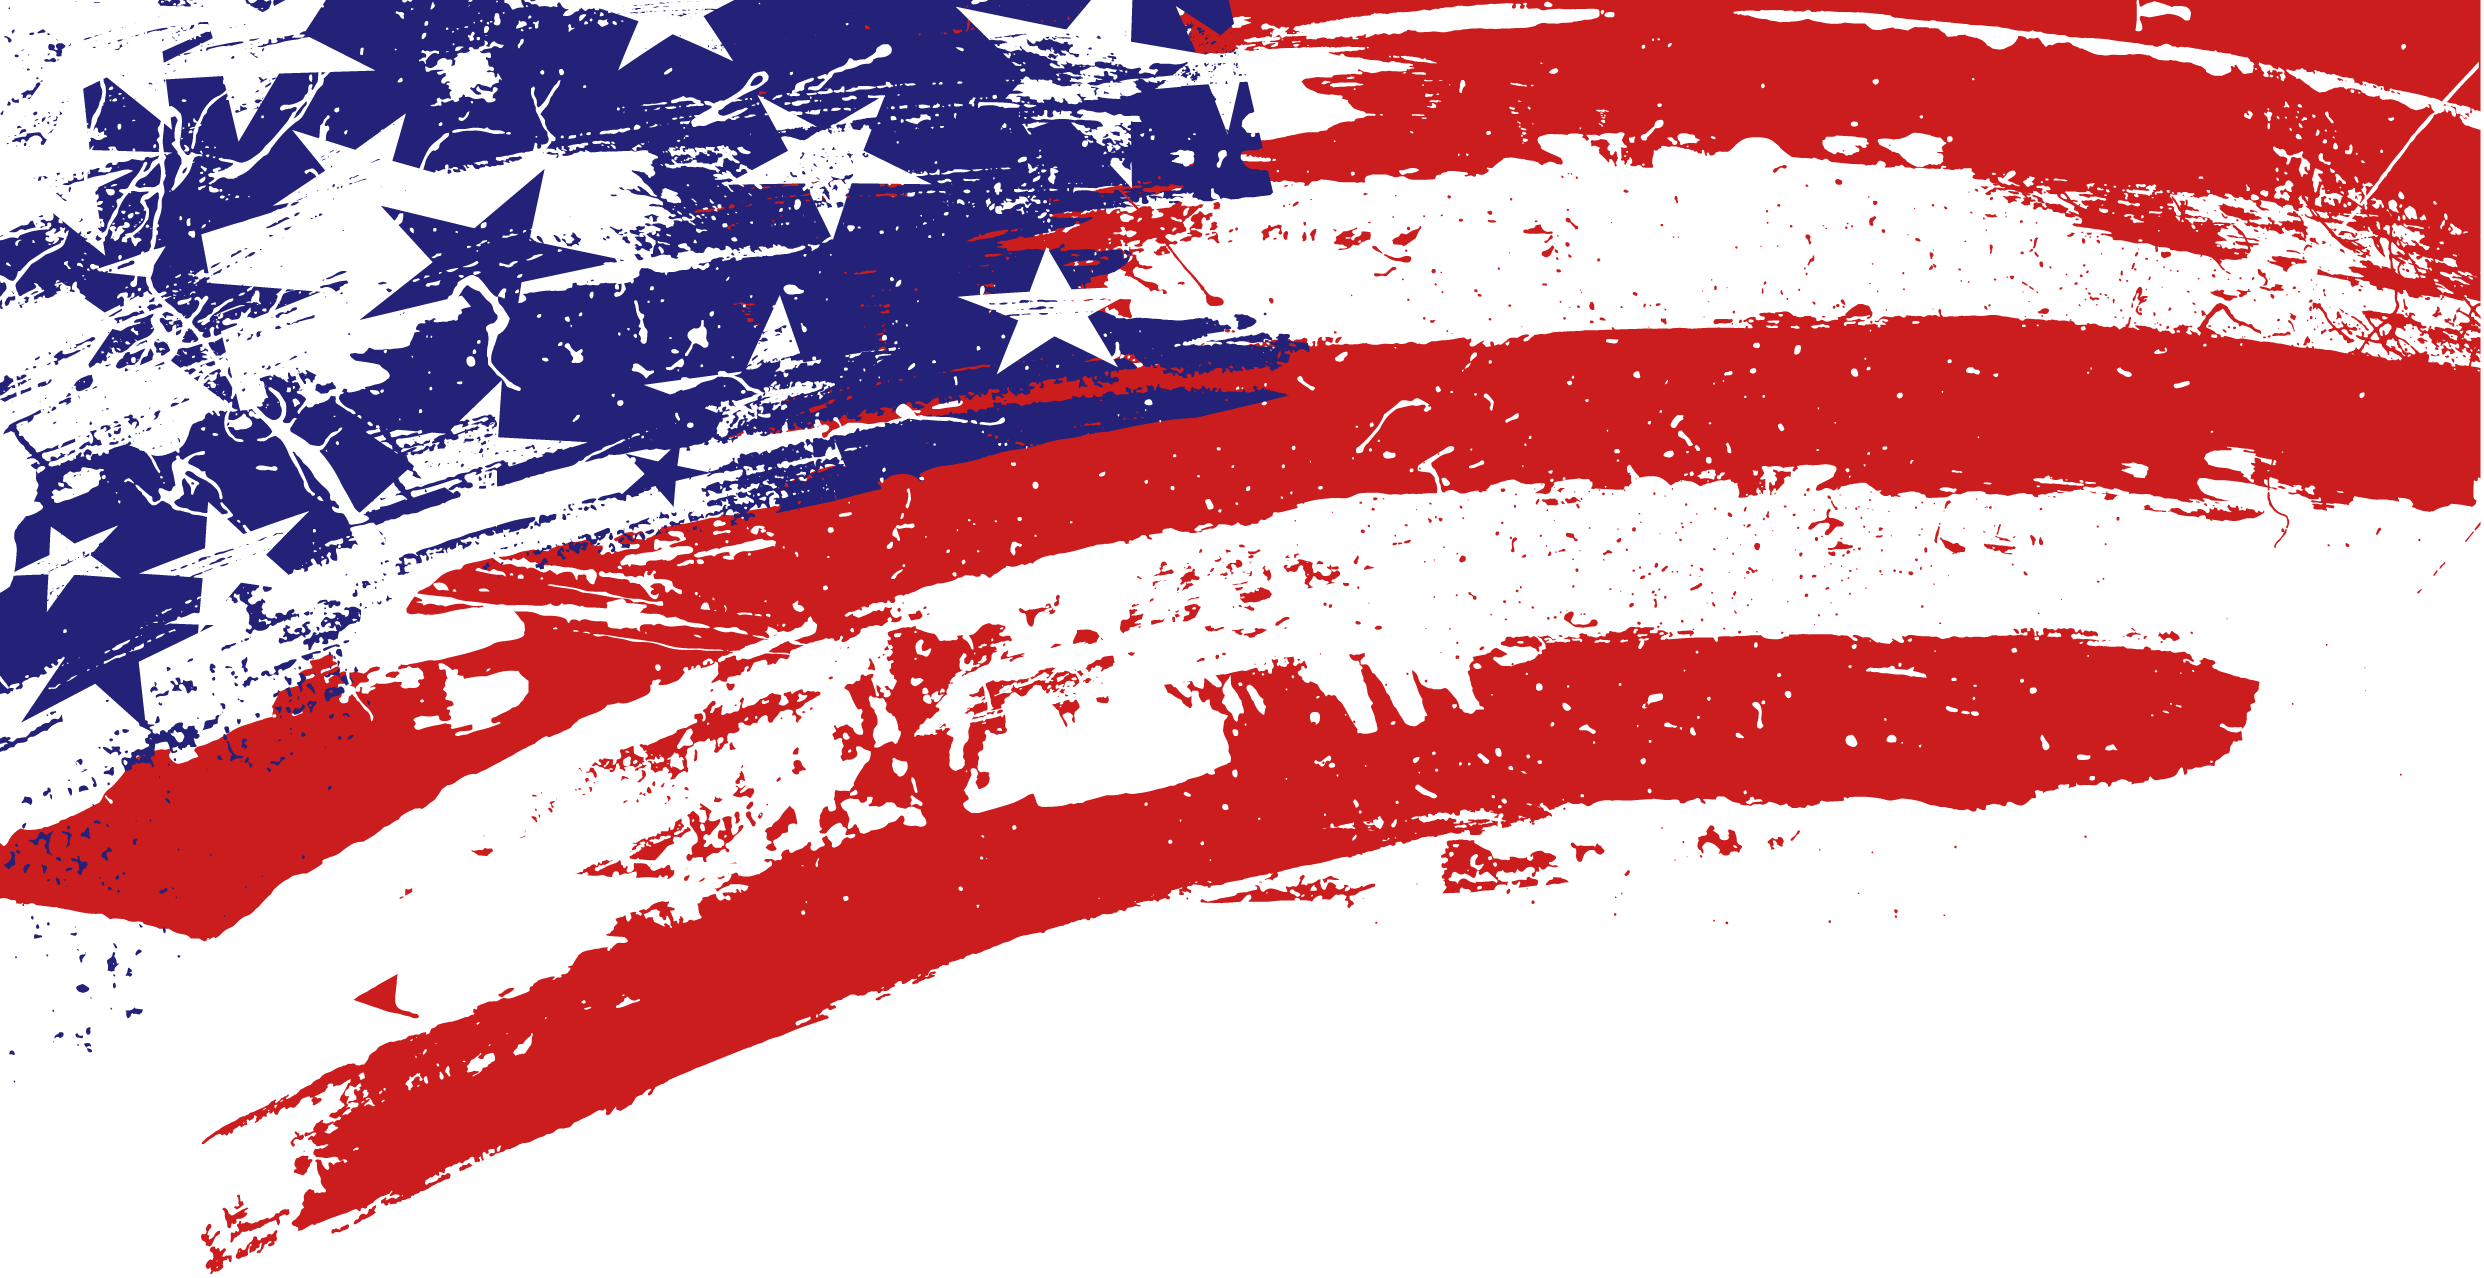 2013 at 2484 1278 in USA American Flag Abstract Wallpaper HDpng 2484x1278